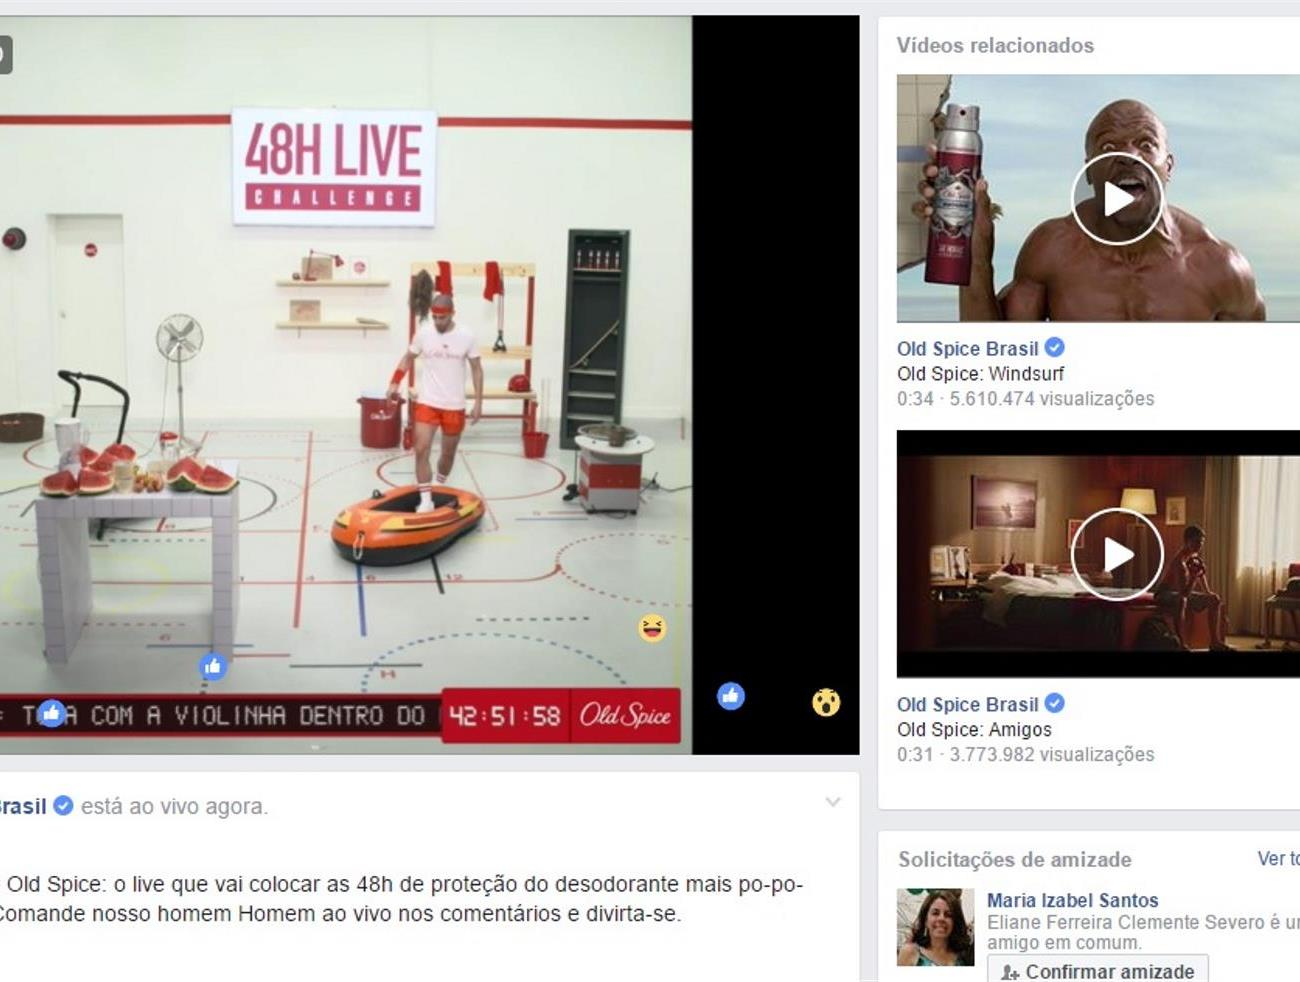 Ação de live promove Old Spice 48 horas no Facebook